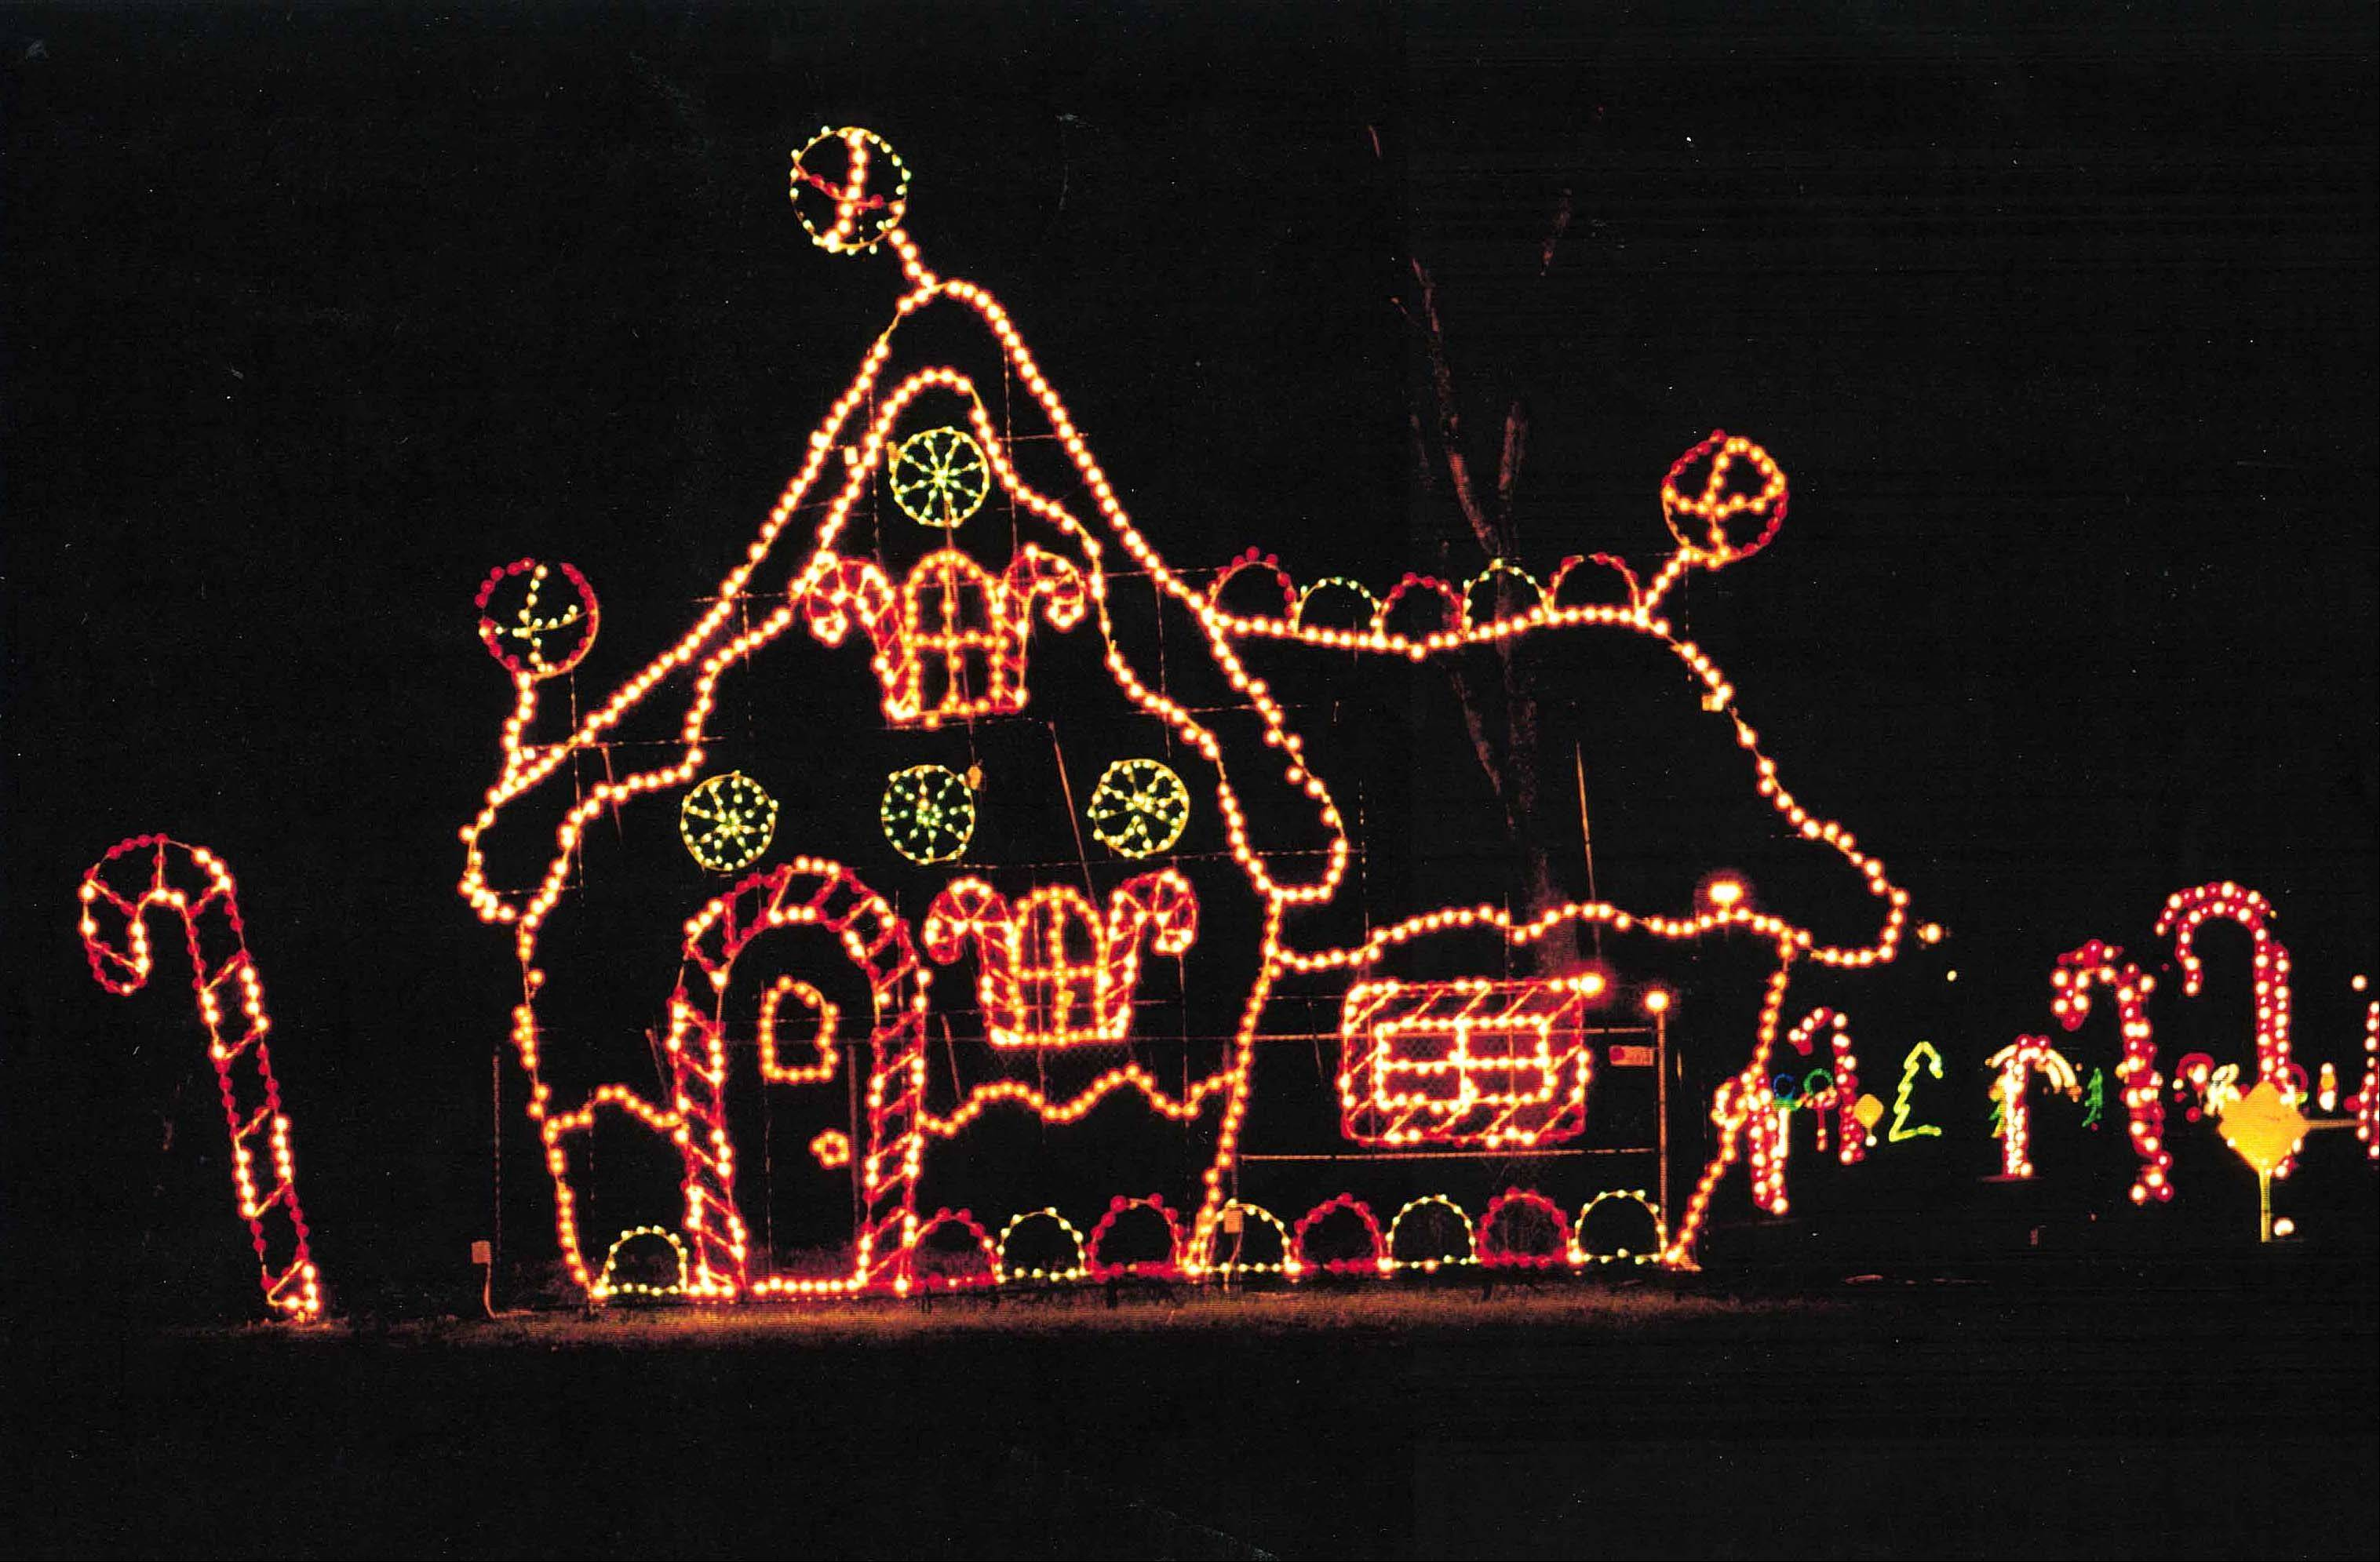 Light displays will adorn the Mooseheart campus through Dec. 31 during the third annual Holiday Lights at Mooseheart. More than 80 displays are now on display and are sponsored by various state organizations in the Moose fraternity.